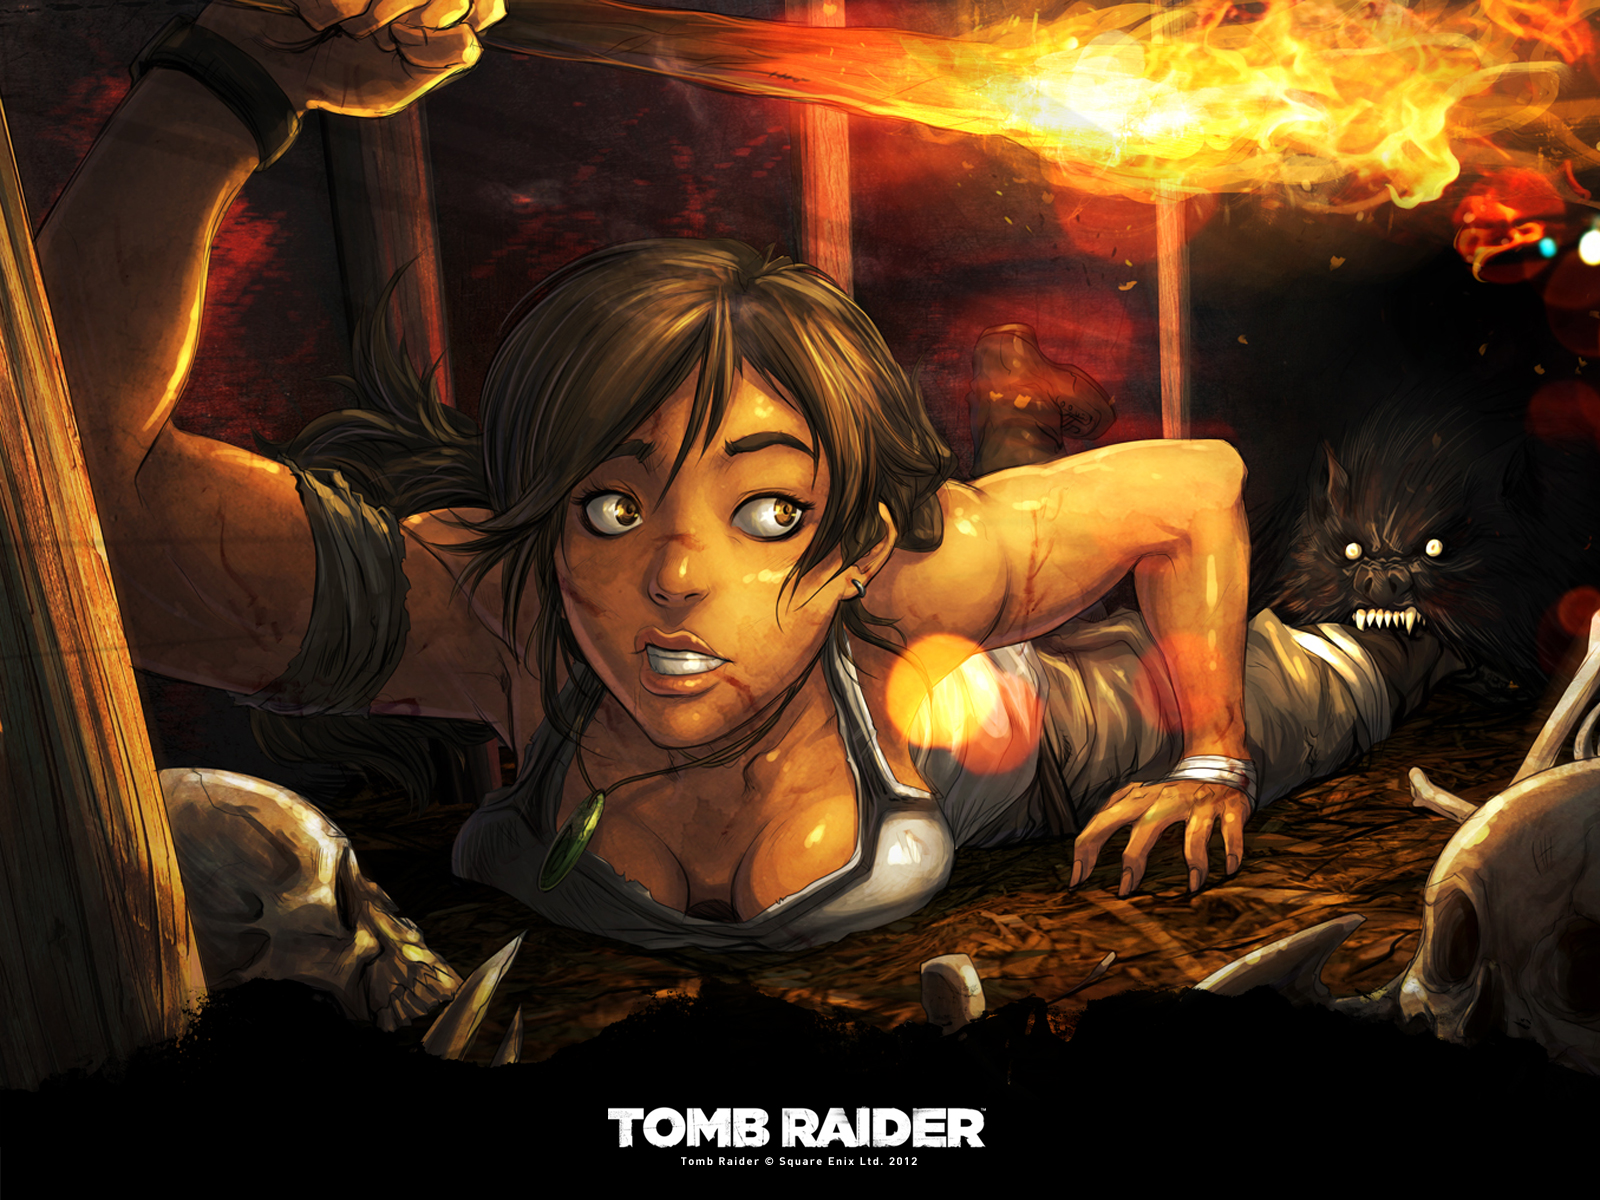 wallpapers tomb raider et la belle lara croft back to the geek. Black Bedroom Furniture Sets. Home Design Ideas